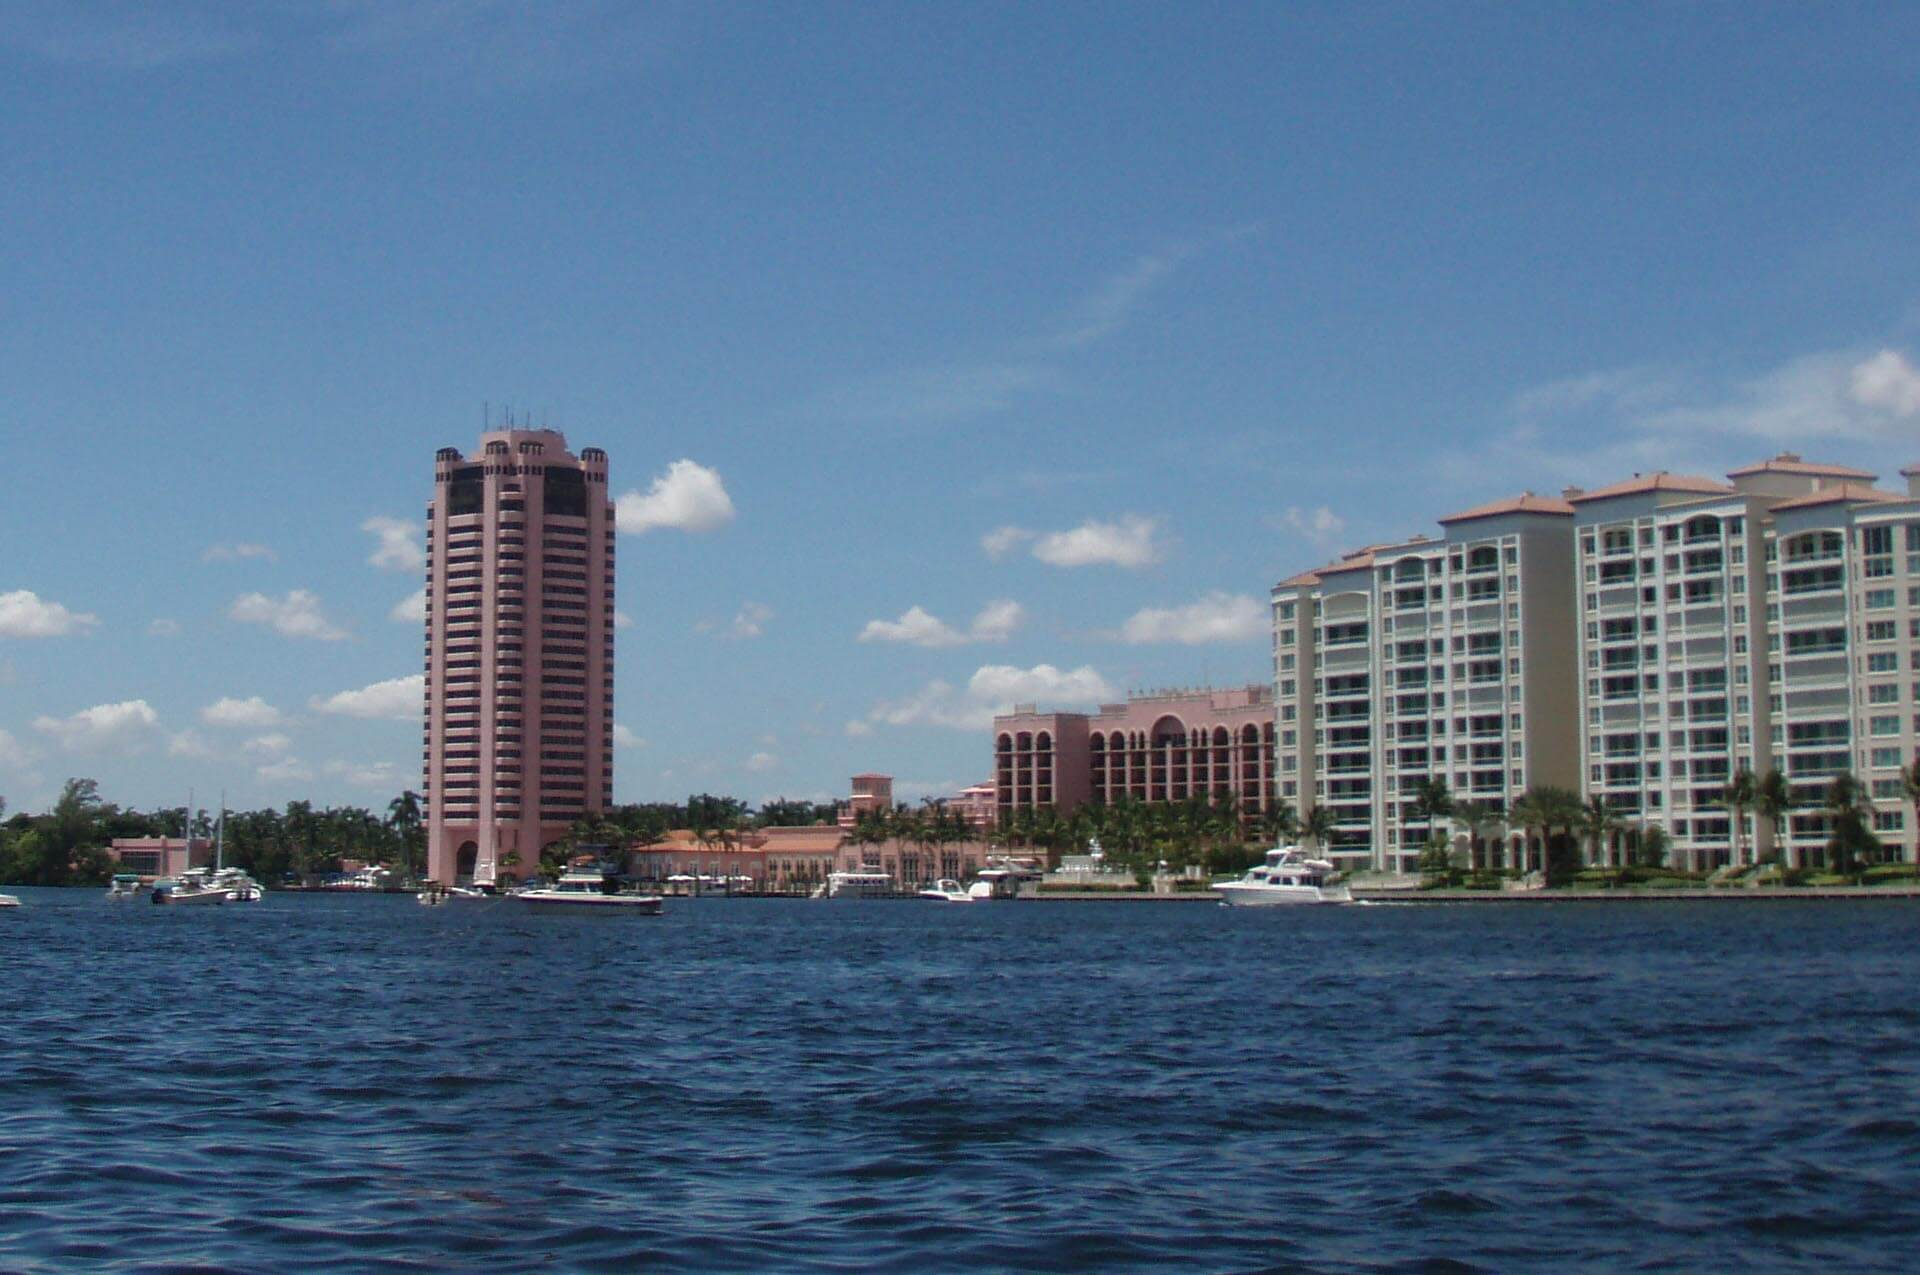 An image of Boca Raton from the water on Lake Boca. Home of the South Florida Lawyers at ASR Law Firm.